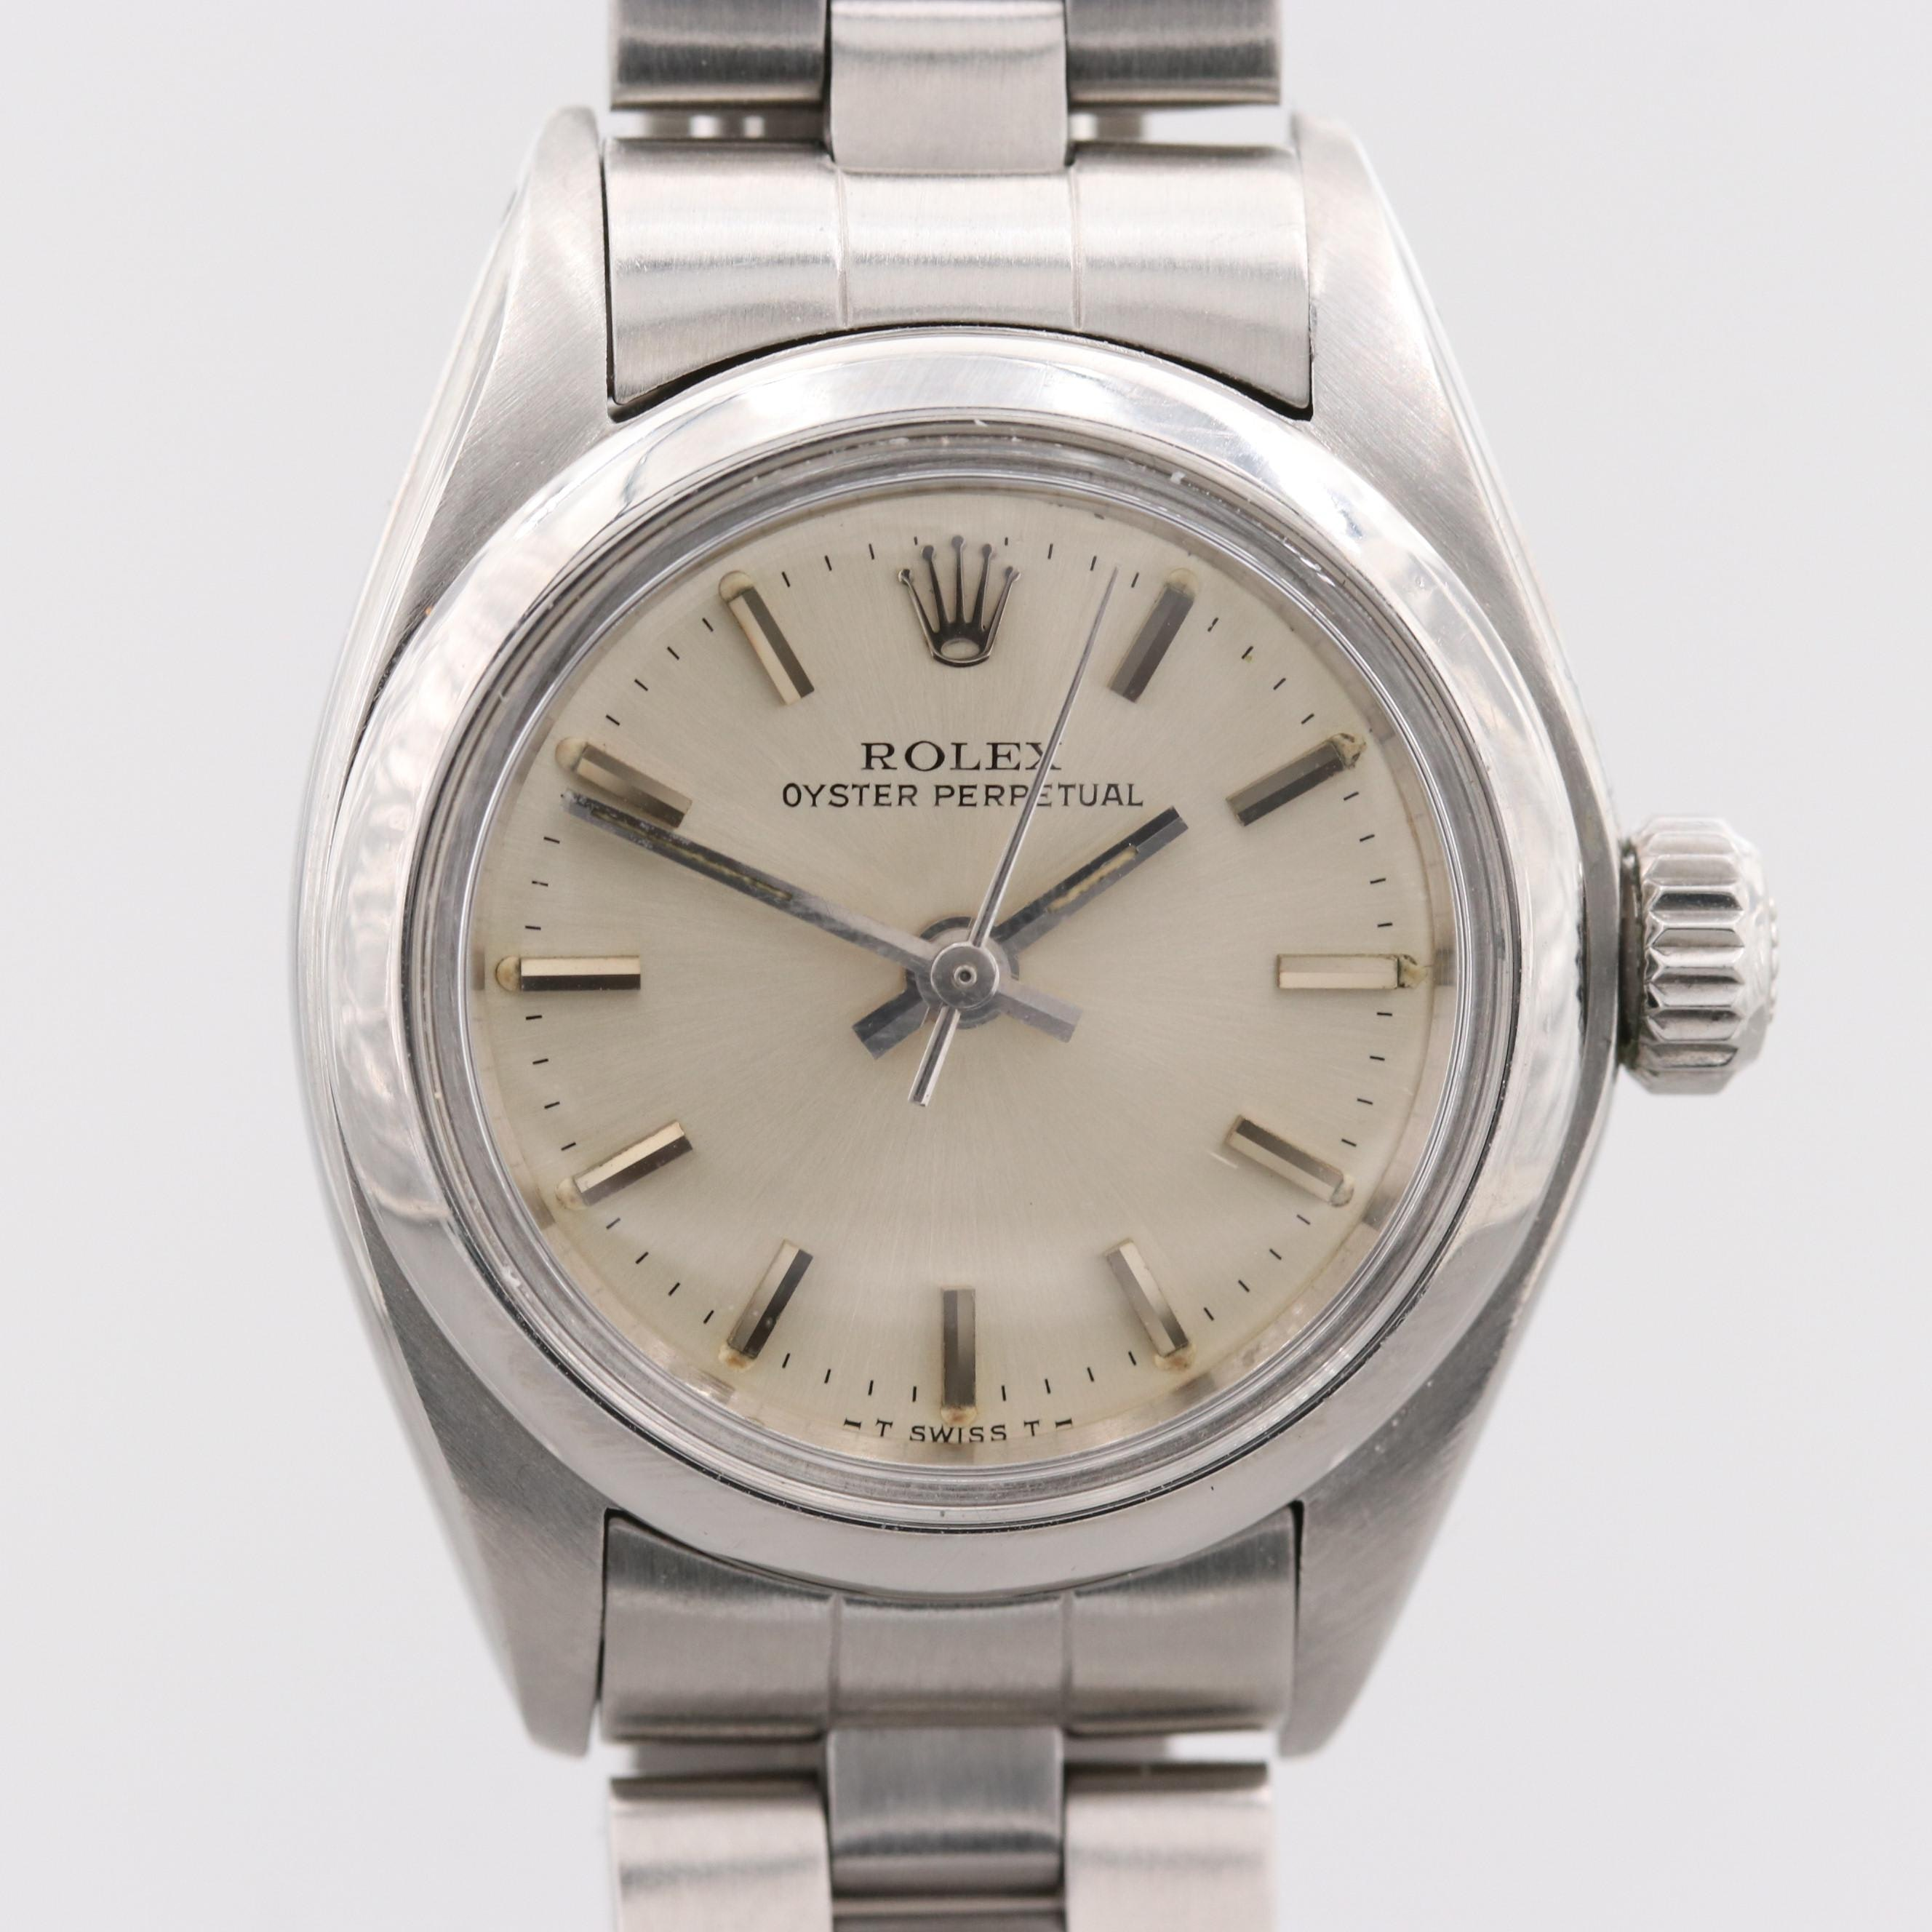 Vintage Rolex Oyster Perpetual Stainless Steel Wristwatch